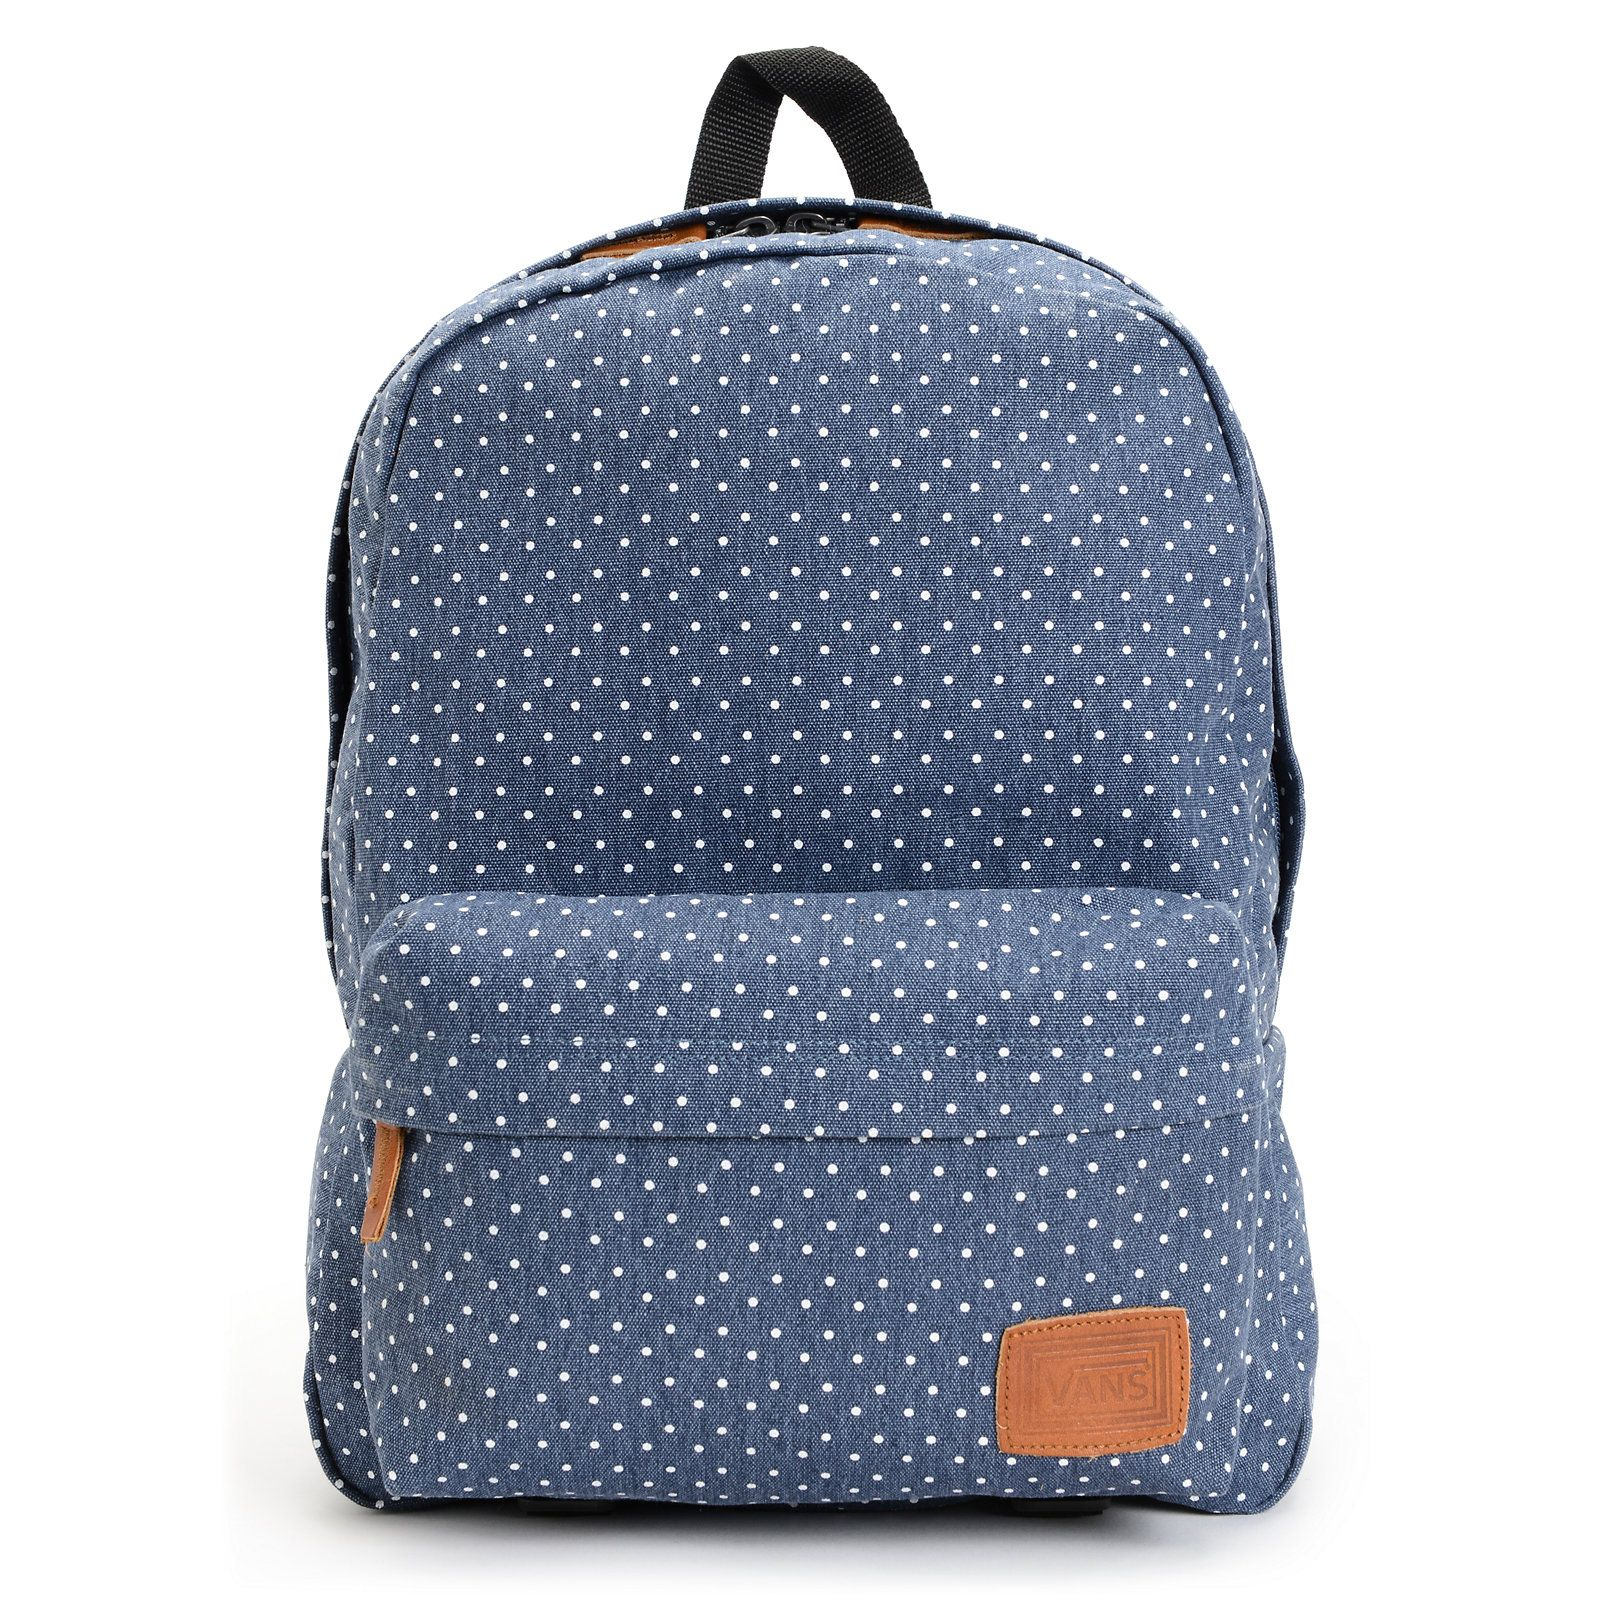 5b5387fb0c2c Vans Deana Polka Dot Print Blue Backpack at Zumiez   PDP